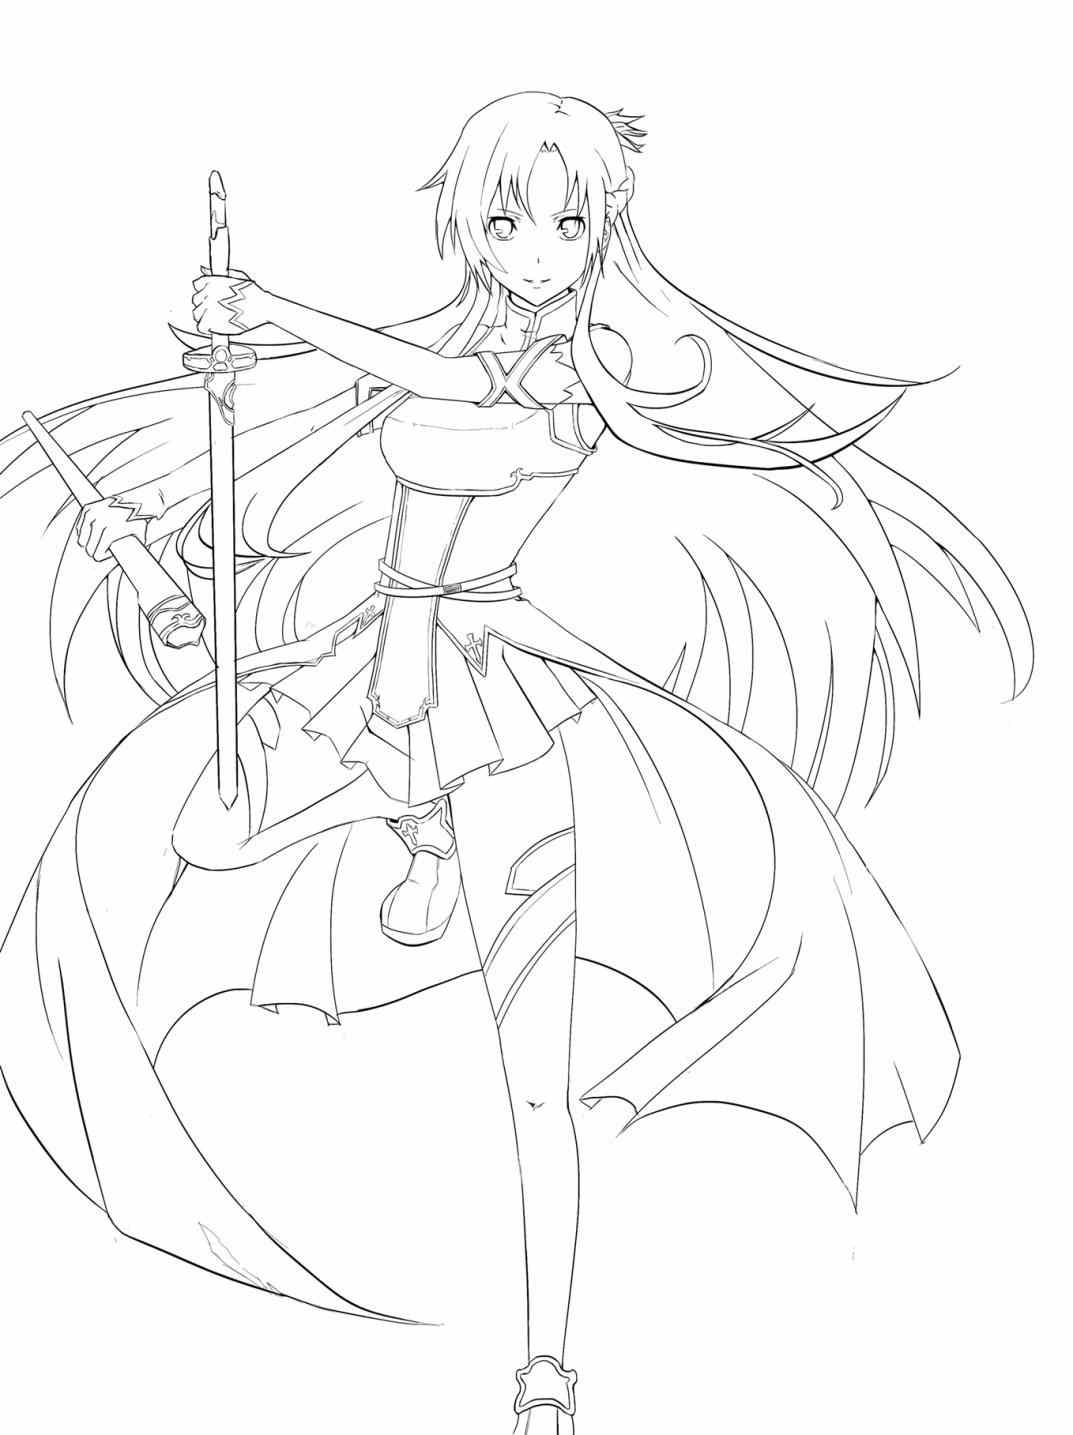 1073x1435 Luxury Kirito And Asuna Coloring Pages Sword Art Online Page